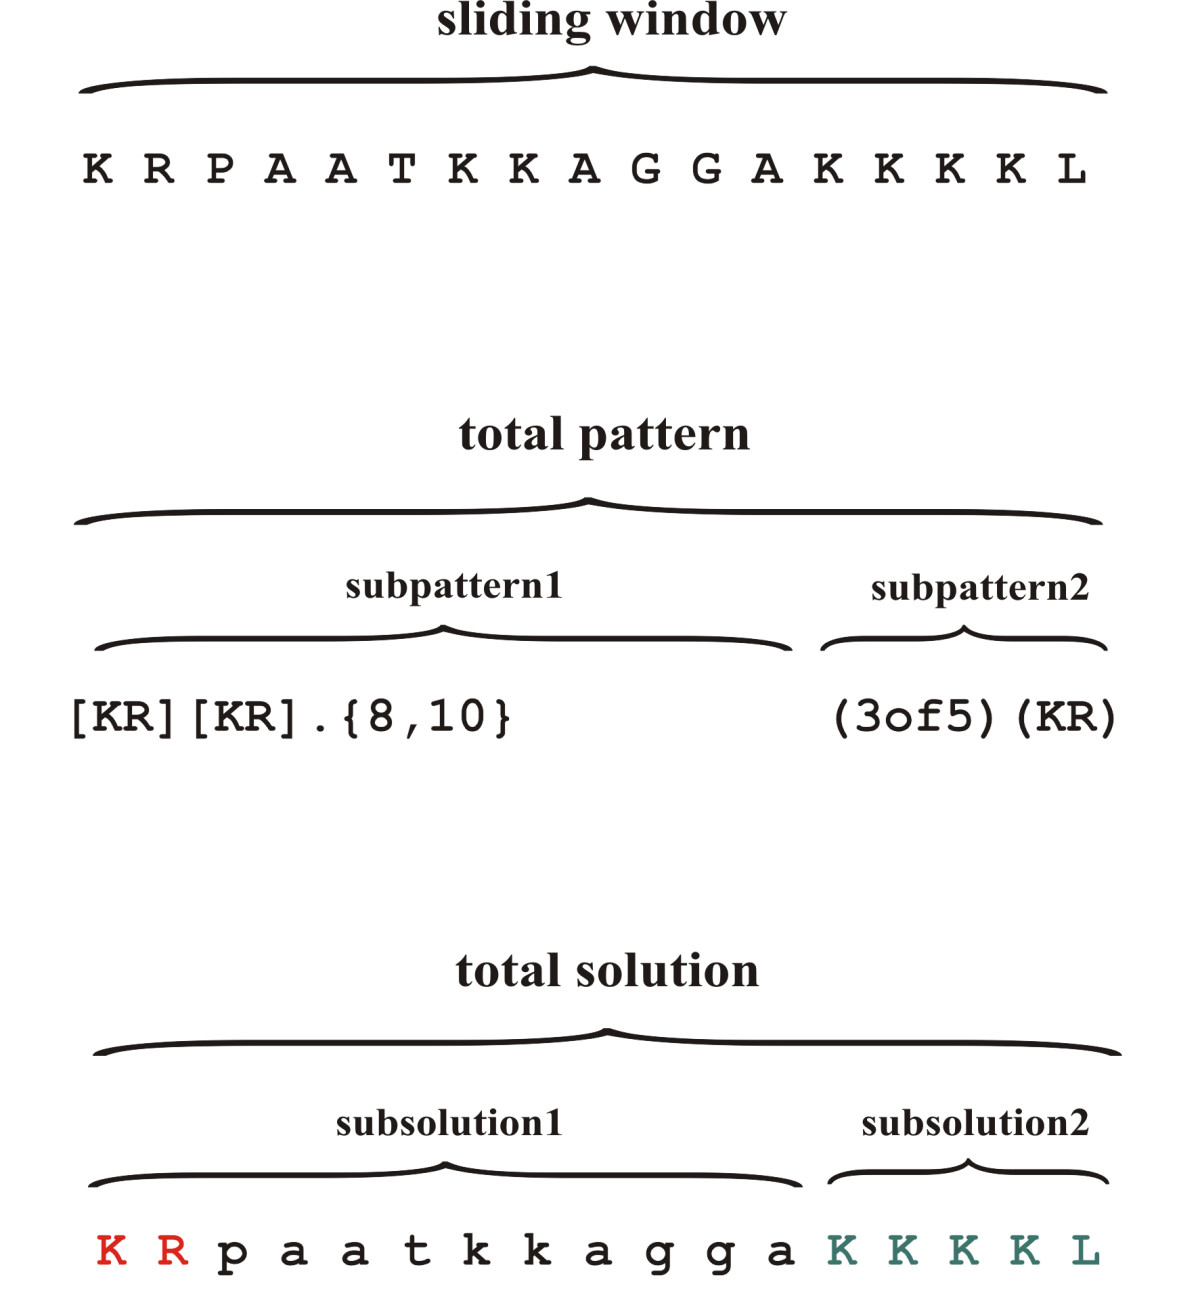 https://static-content.springer.com/image/art%3A10.1186%2F1471-2105-7-144/MediaObjects/12859_2005_Article_883_Fig1_HTML.jpg